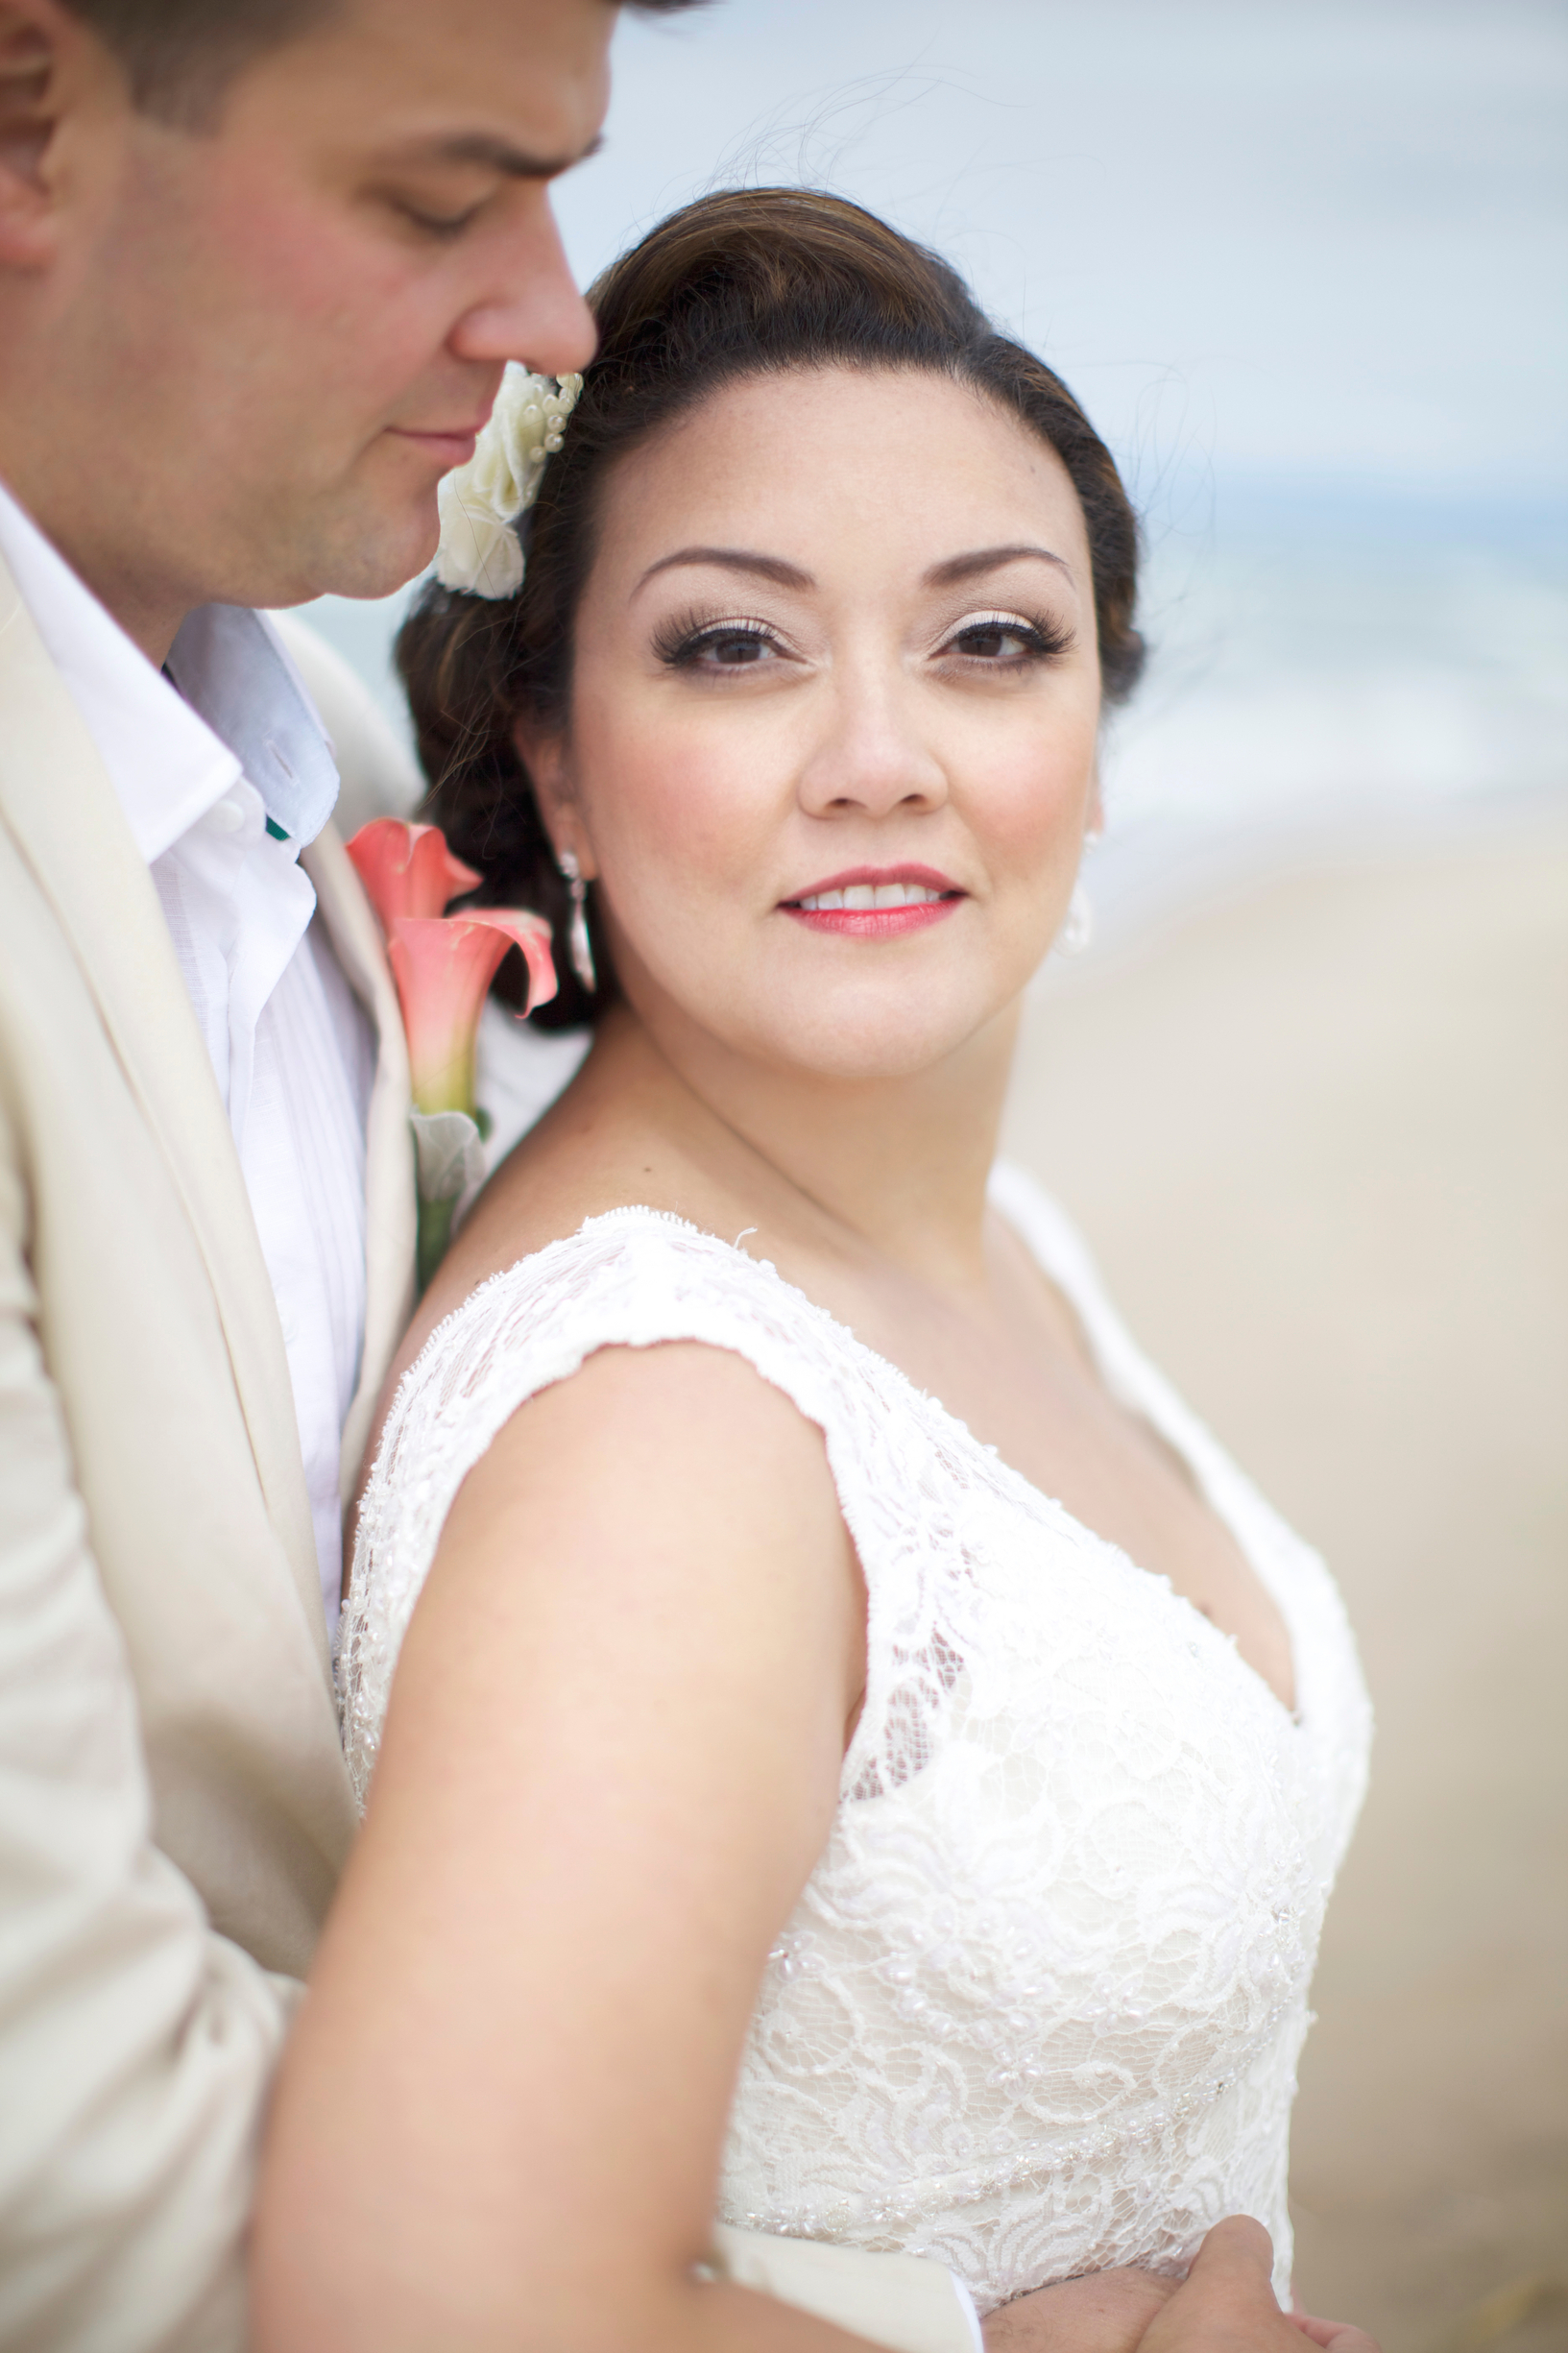 Image by Lauren Albanese Photography , Makeup by Four Lady Events